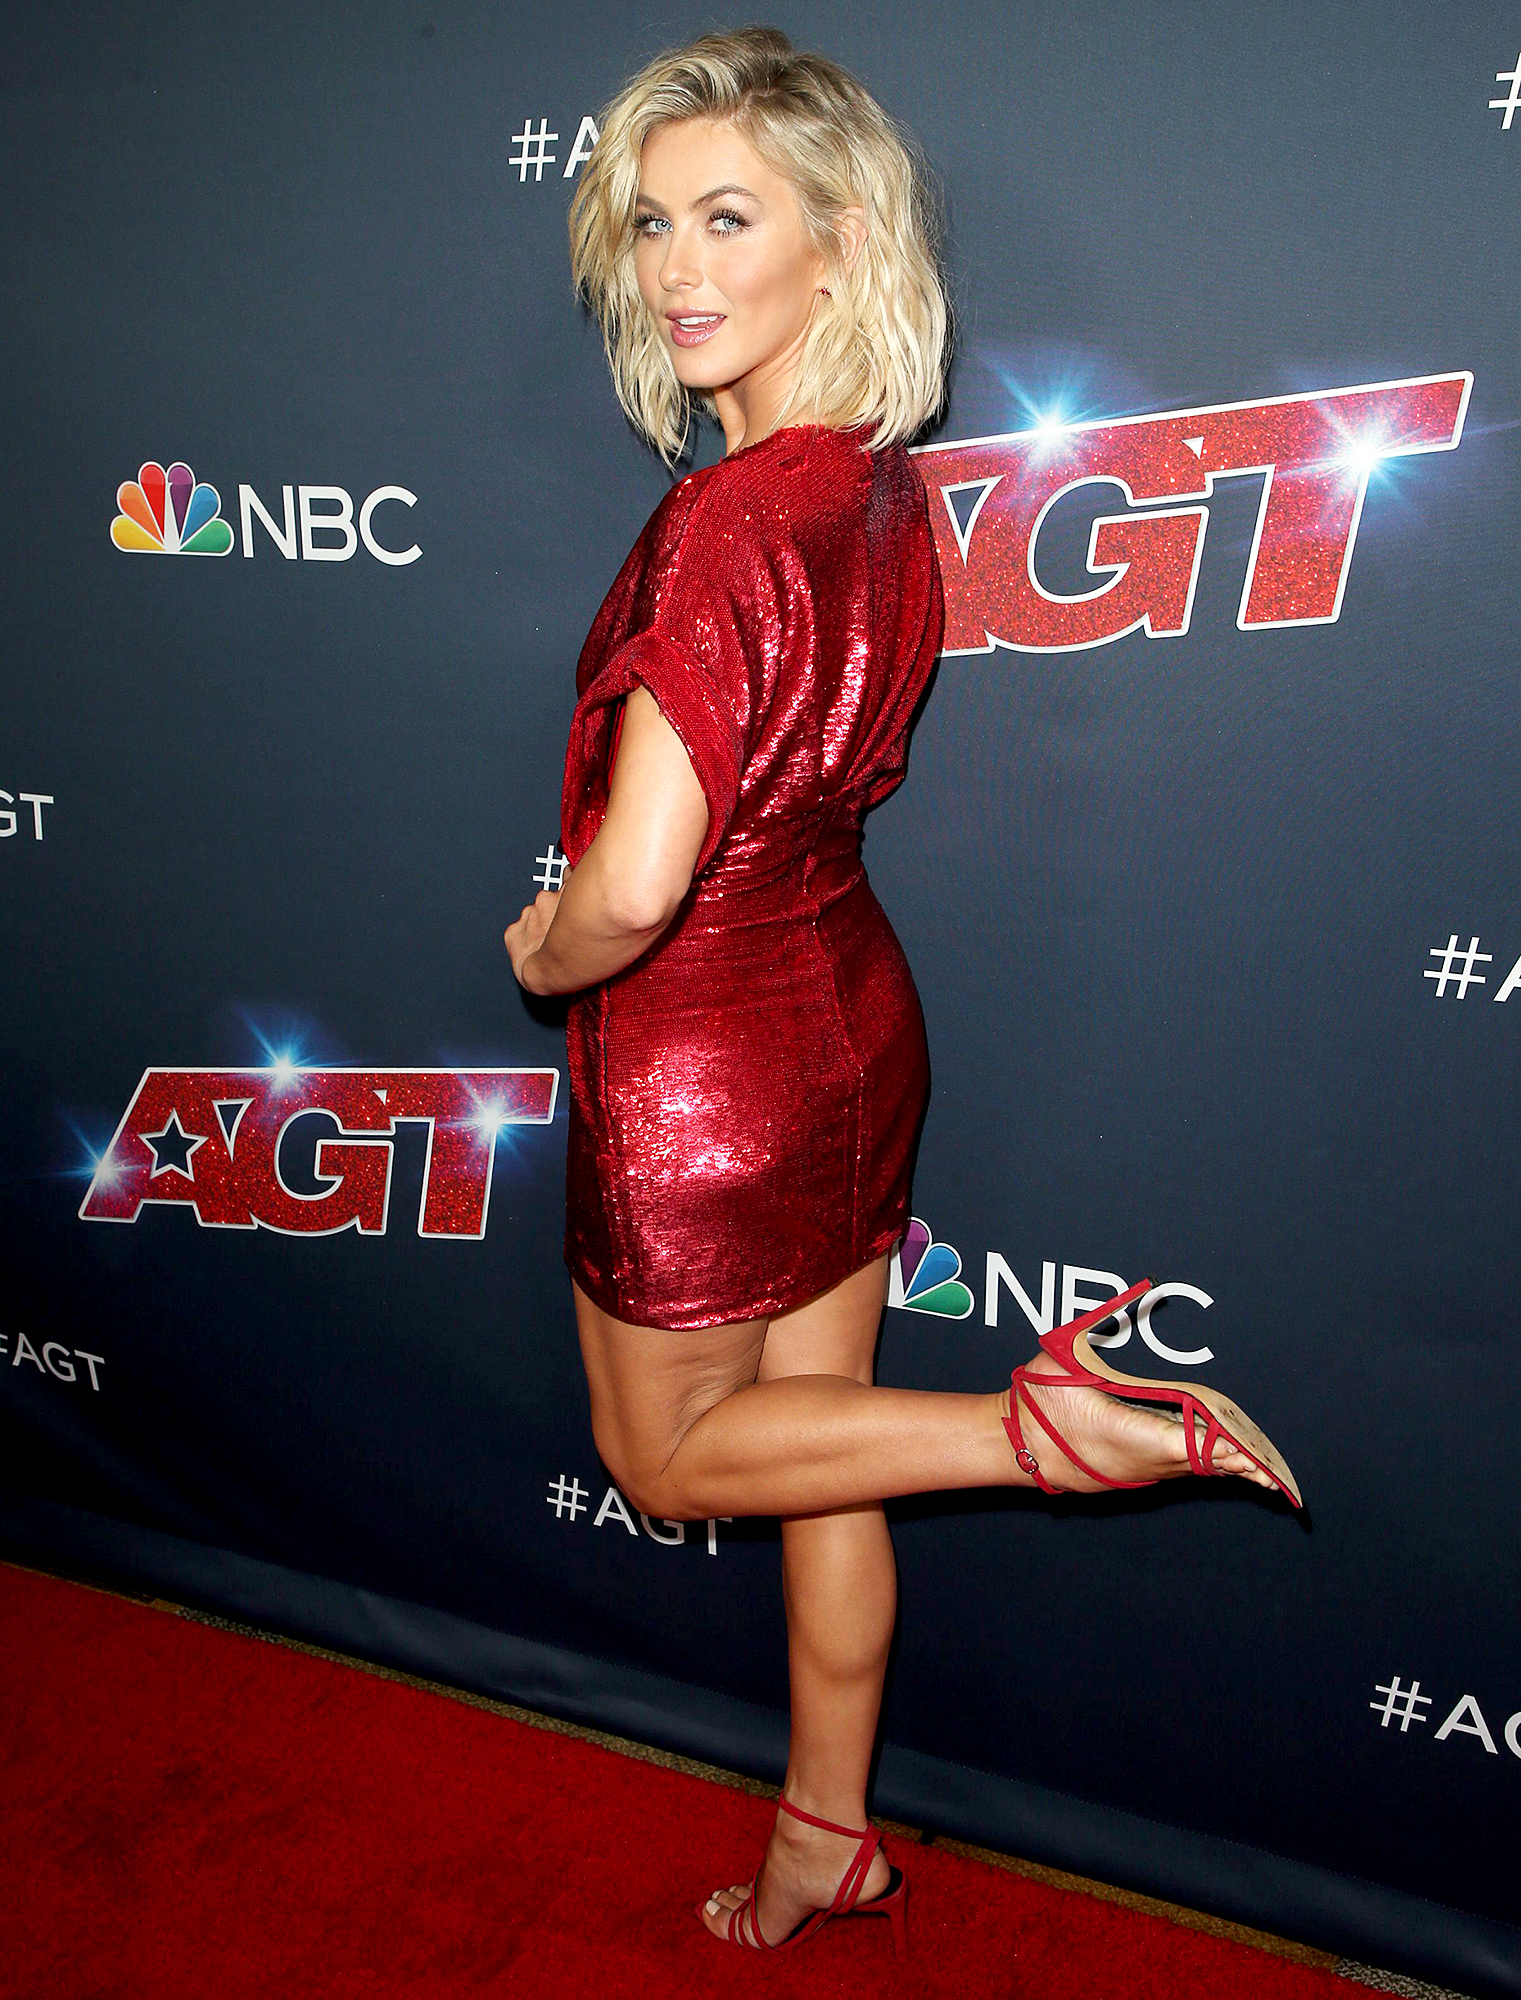 Julianne hough dancing with the stars winner